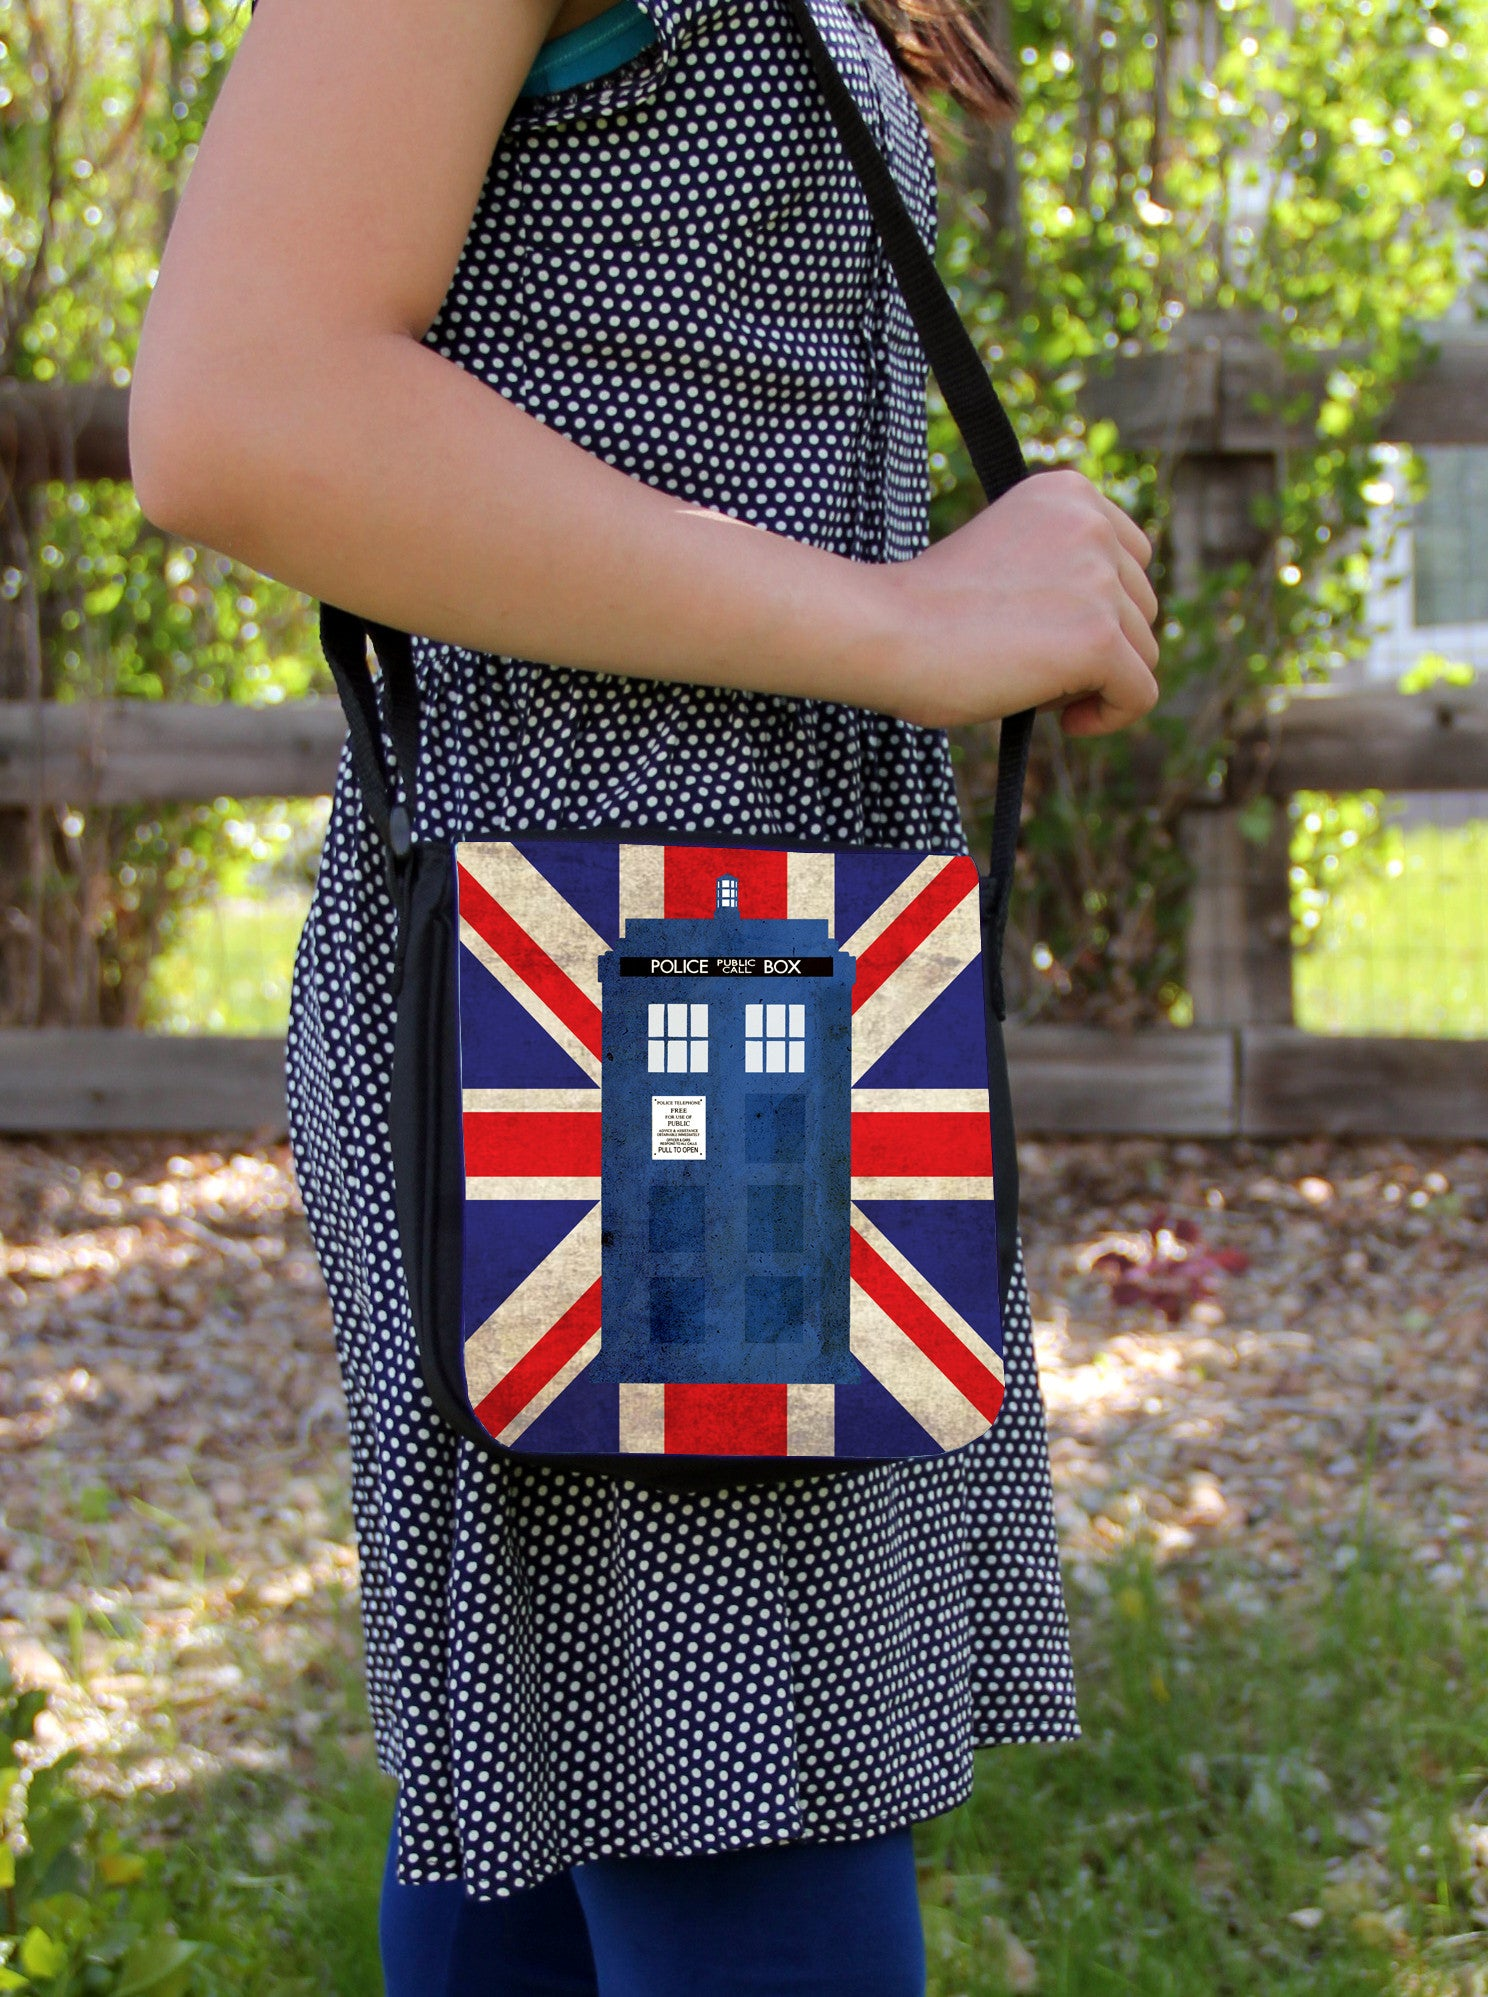 Police Box in London Messenger Bag - Consulting Fangeeks - 1